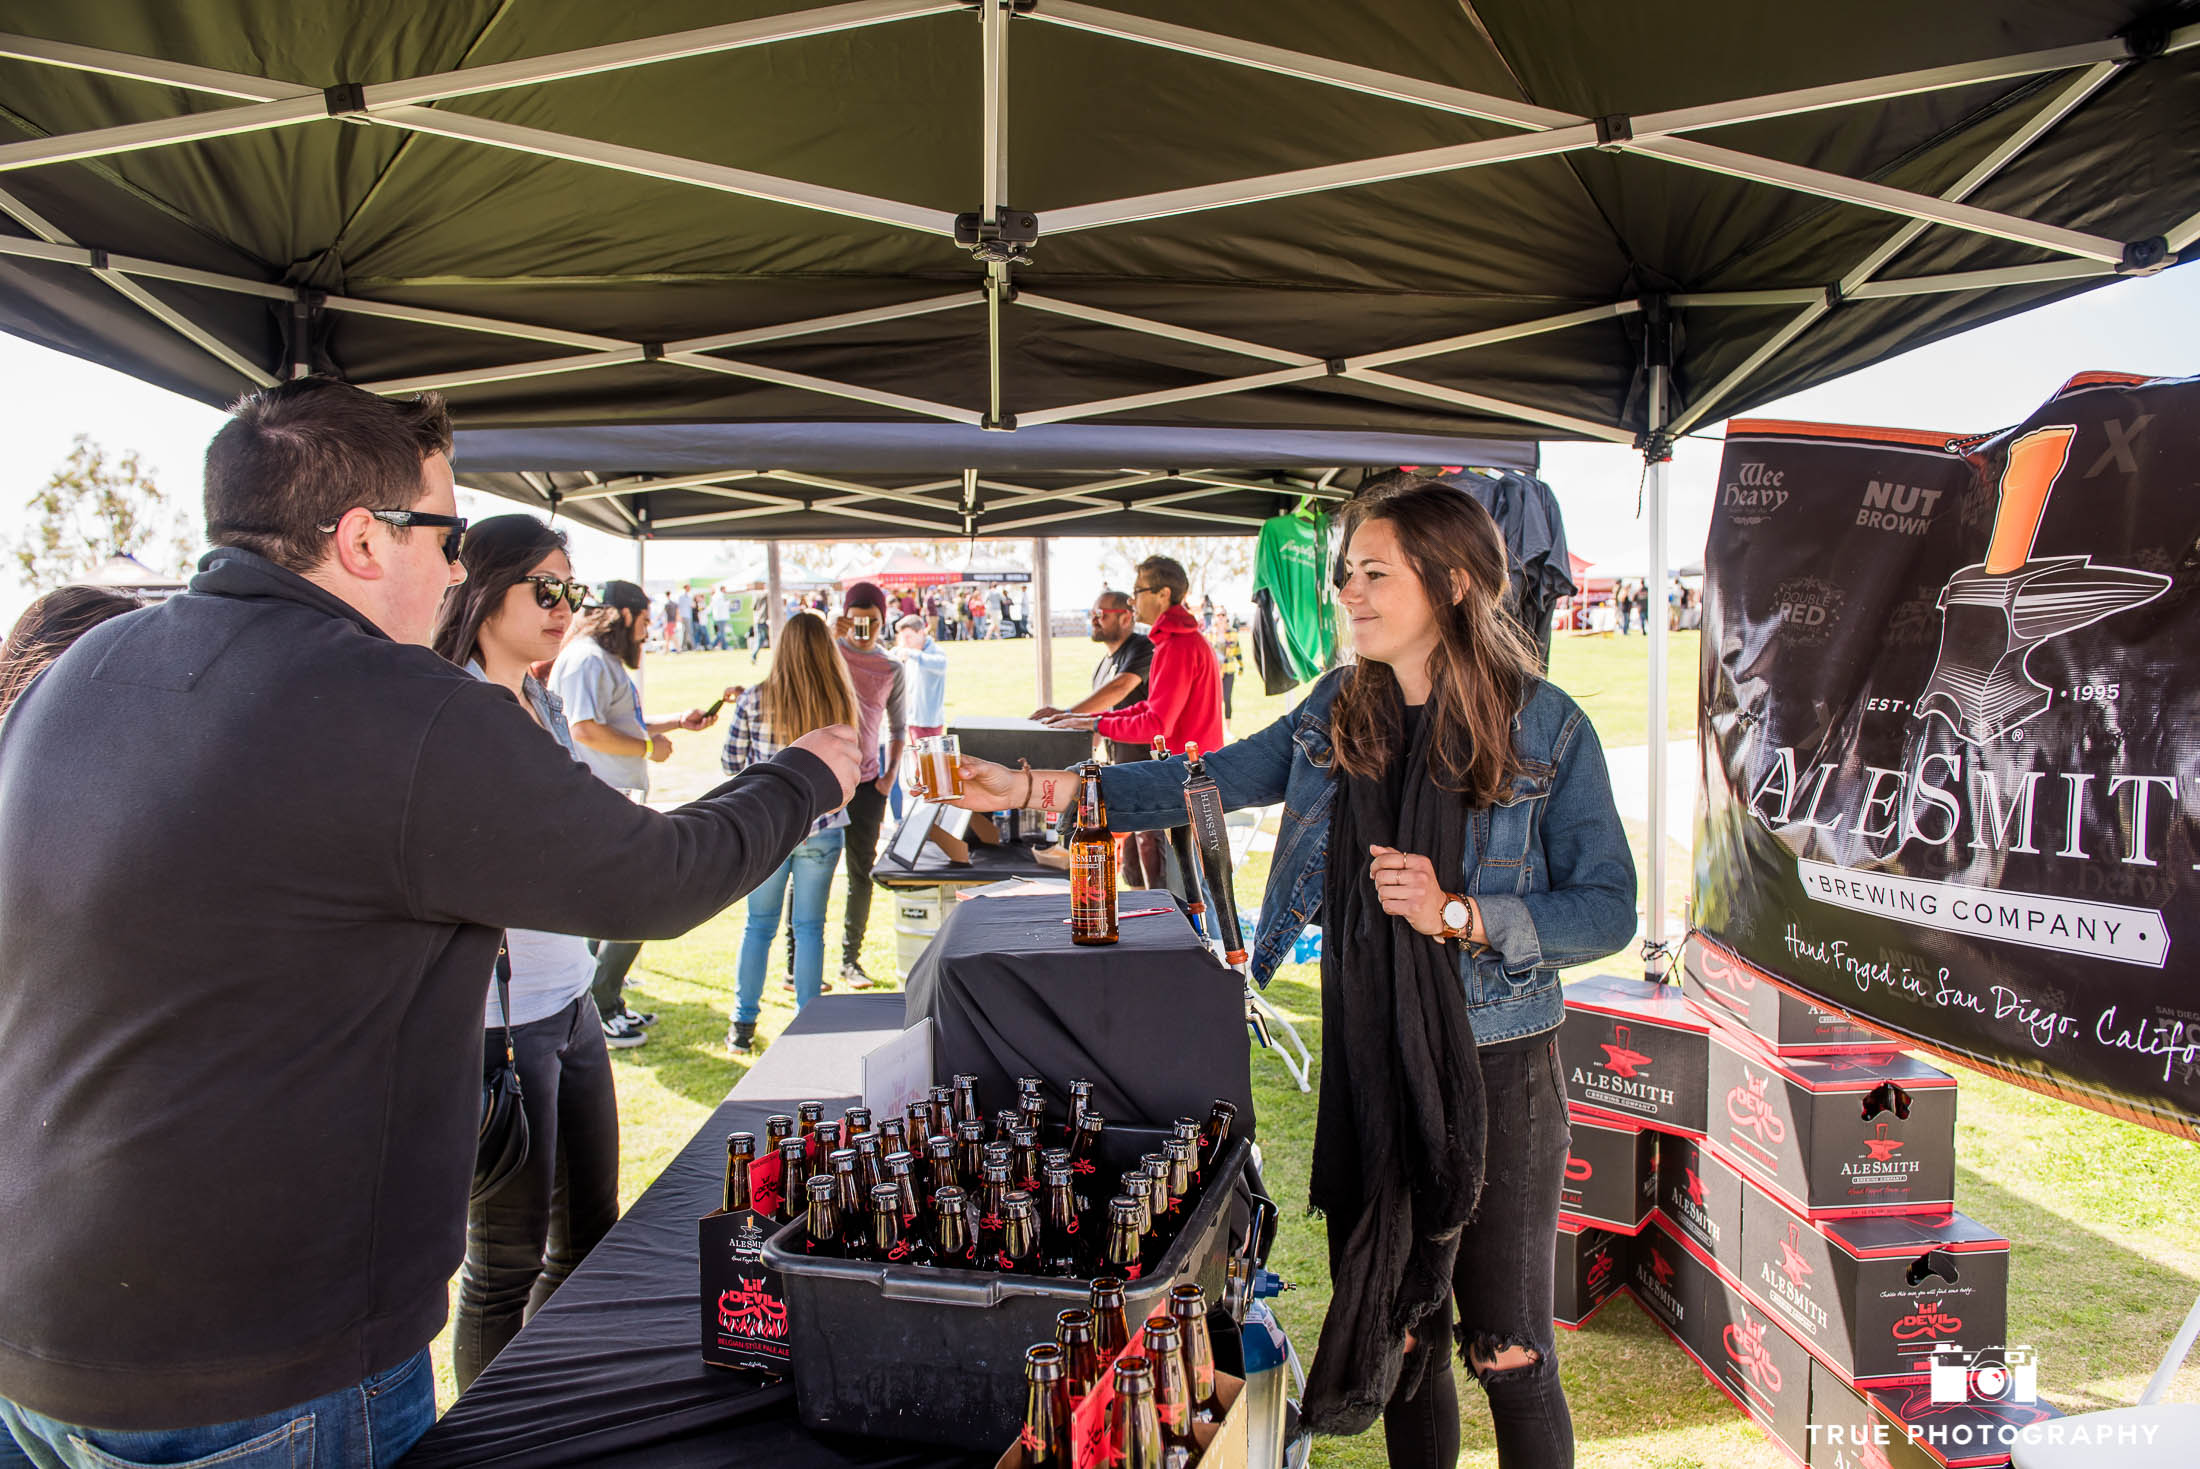 Alesmith Brewing Company hands out beer to eventgoers at Best Coast Beer Fest